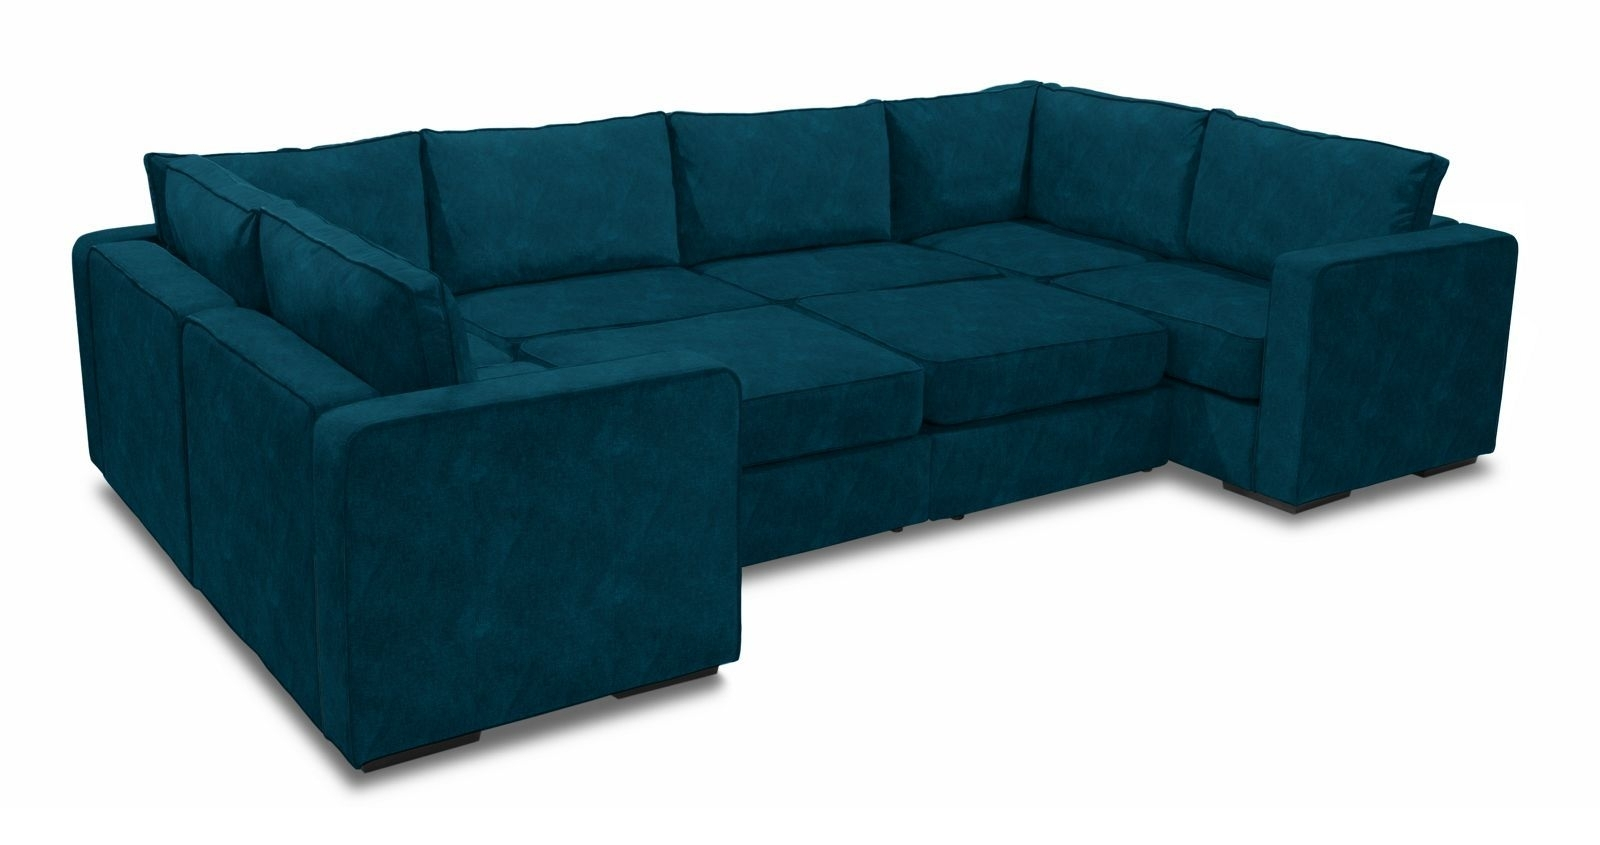 8 Seats + 10 Sides | Living/media Room | Pinterest | Couch, Home regarding London Optical Reversible Sofa Chaise Sectionals